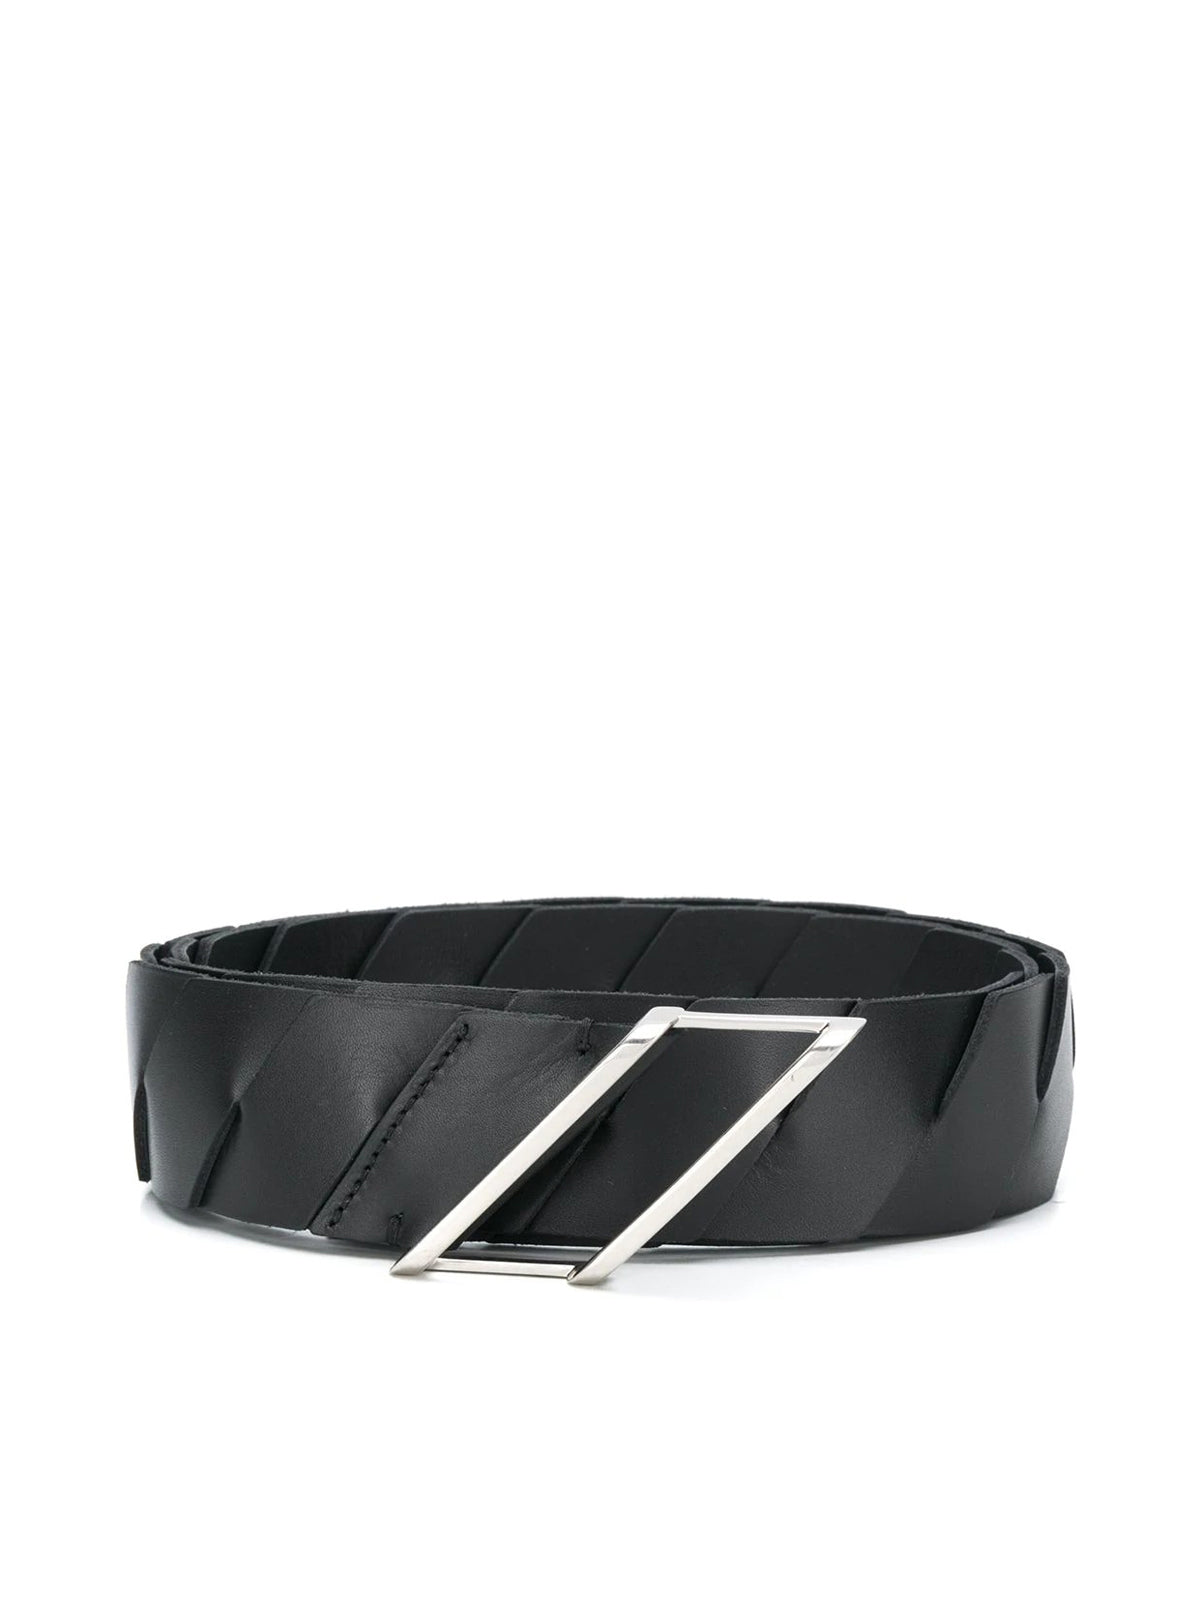 Intrecciato weave leather belt